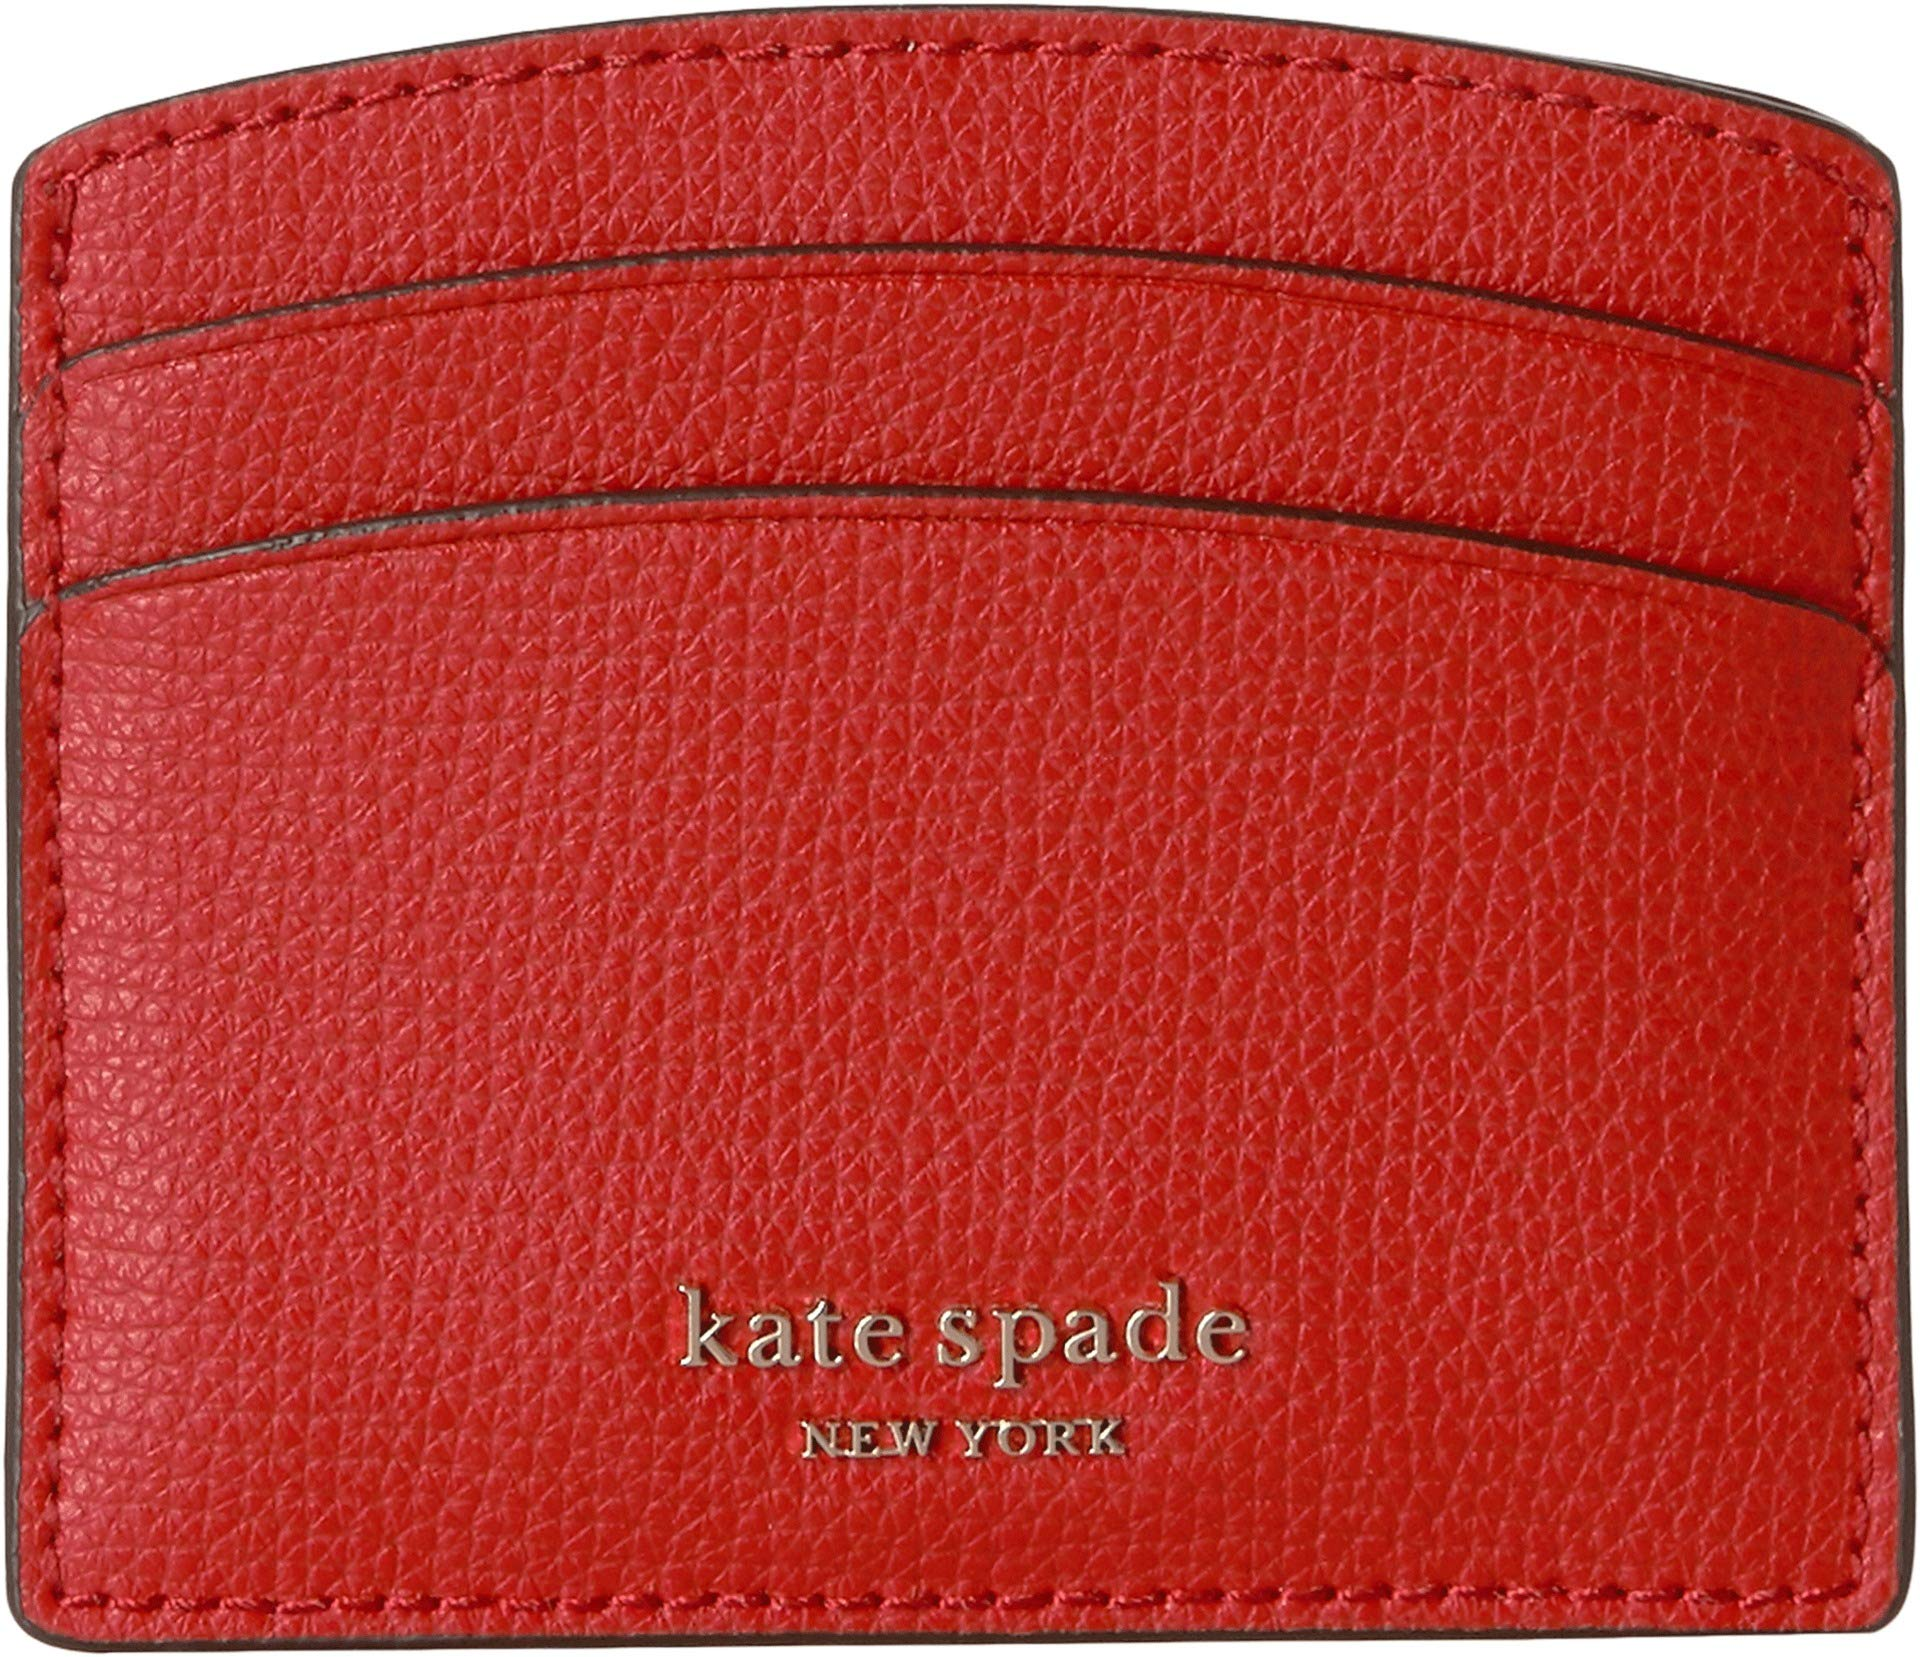 Kate Spade New York Women's Sylvia Card Holder, Hot Chili, Red, One Size